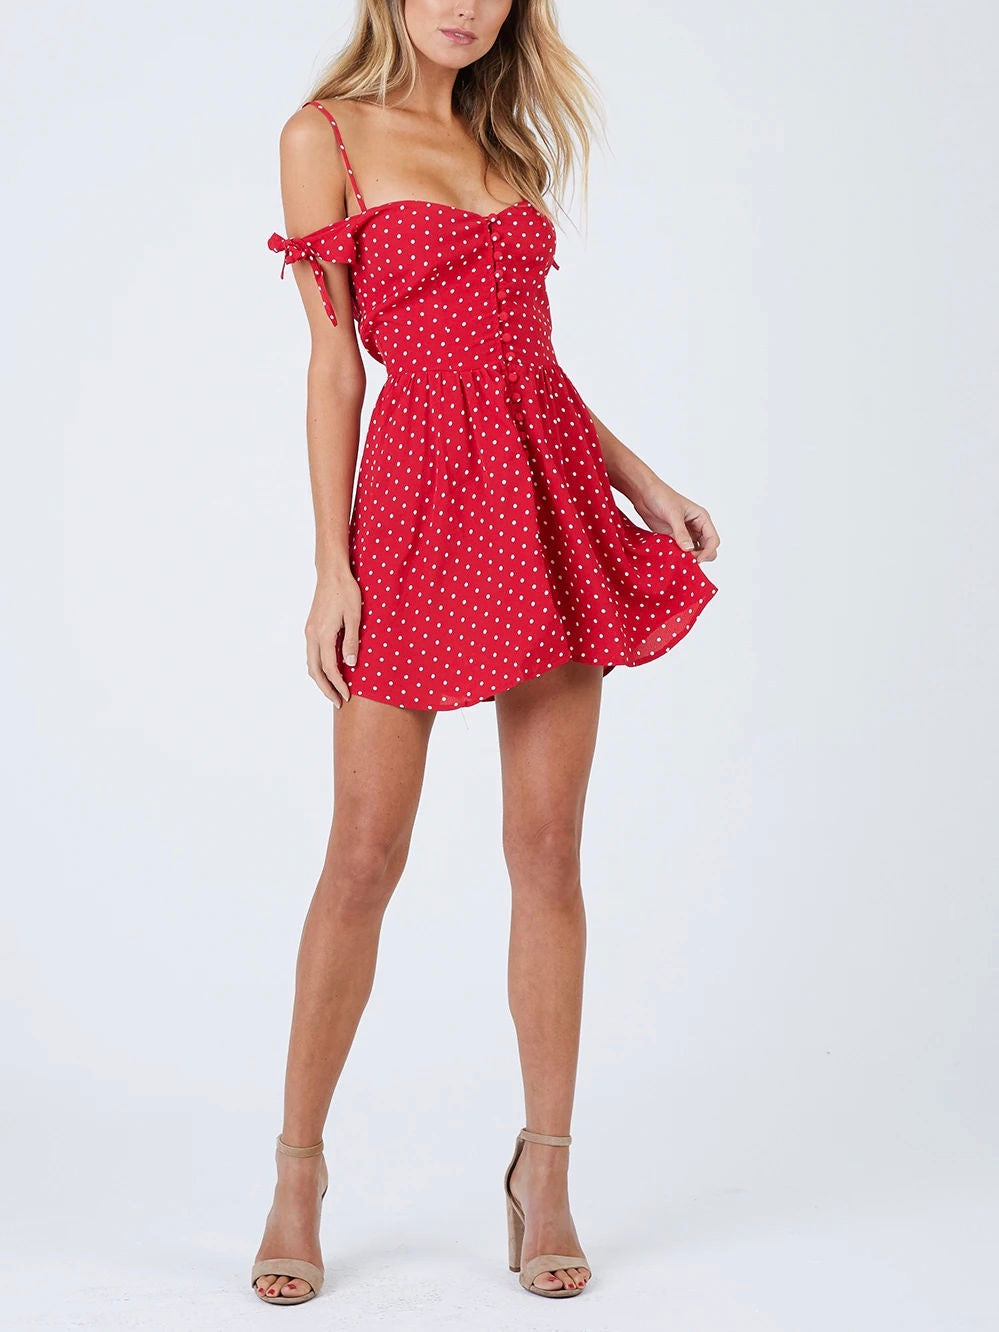 CHERRY DOTS BODHI MINI DRESS